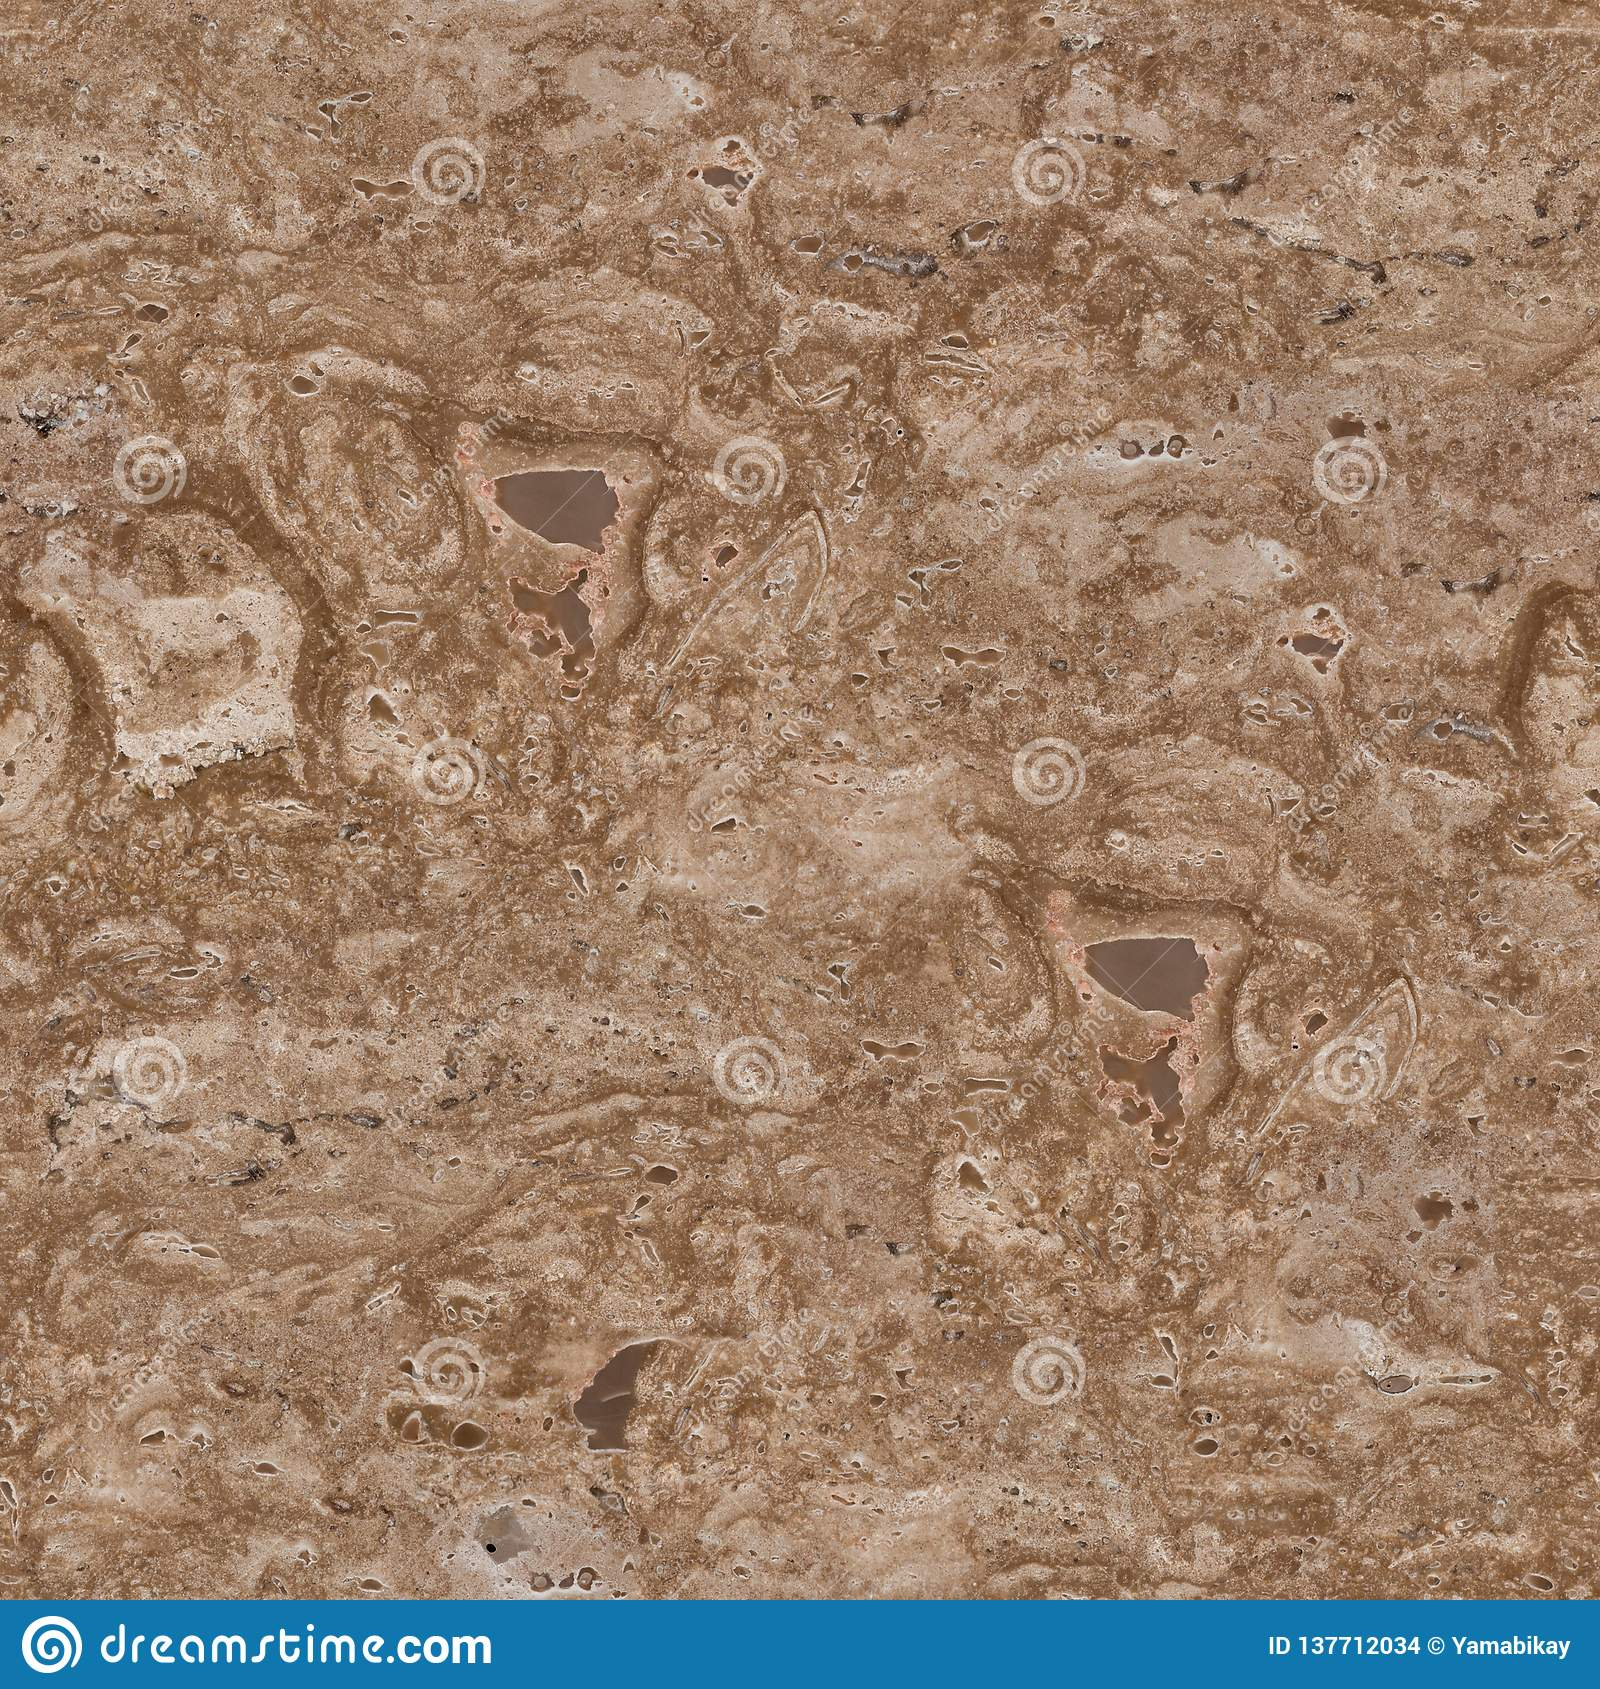 Natural Travertine Stone Texture Seamless Square Background Tile Ready Stock Photo Image Of Pattern Light 137712034